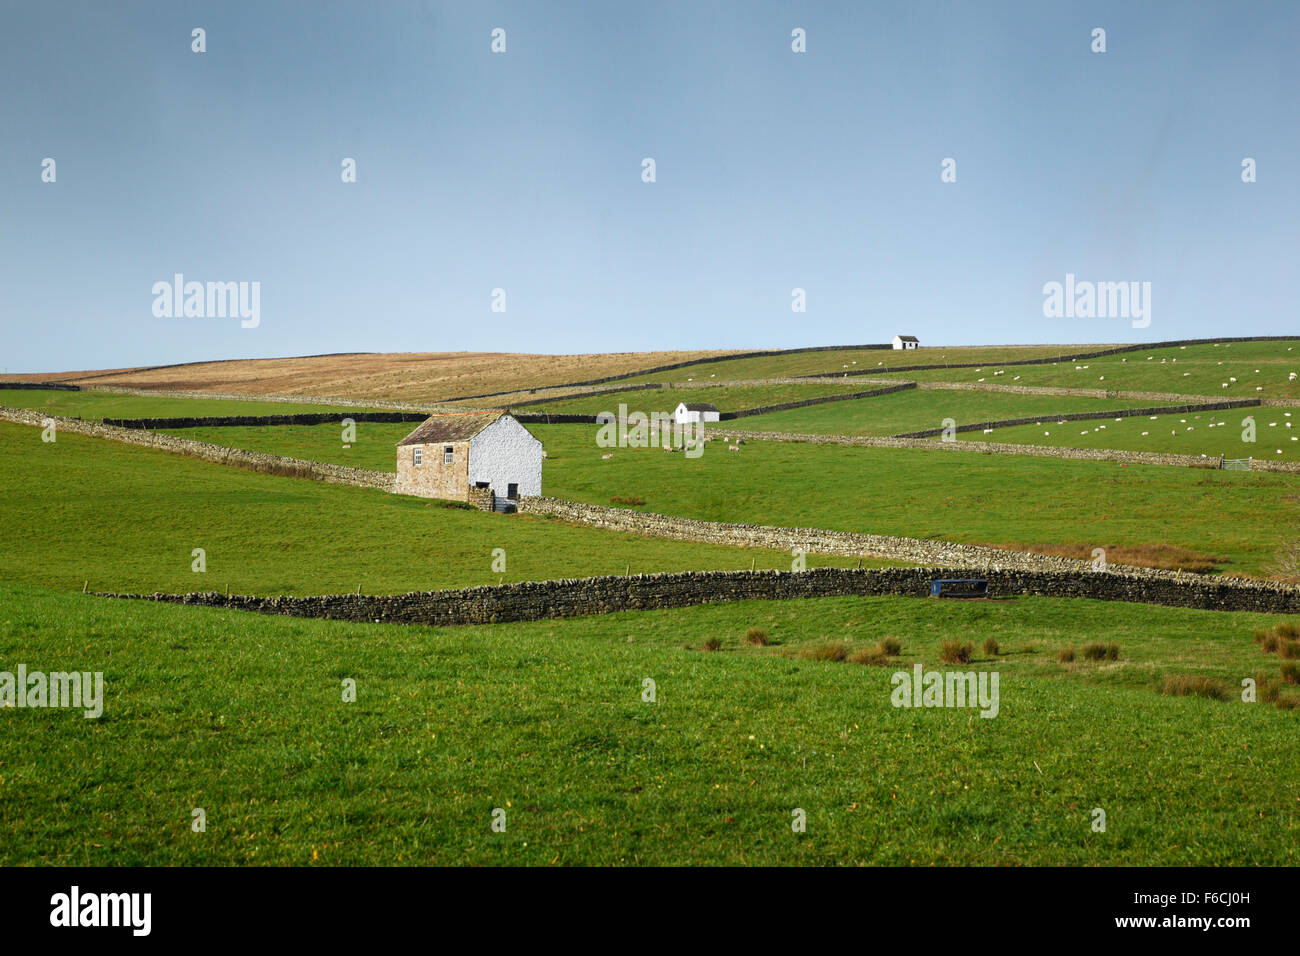 Barns and dry stone walls in Teesdale, Near Newbiggin. County Durham. England. UK. White washed barns are a distinctive - Stock Image